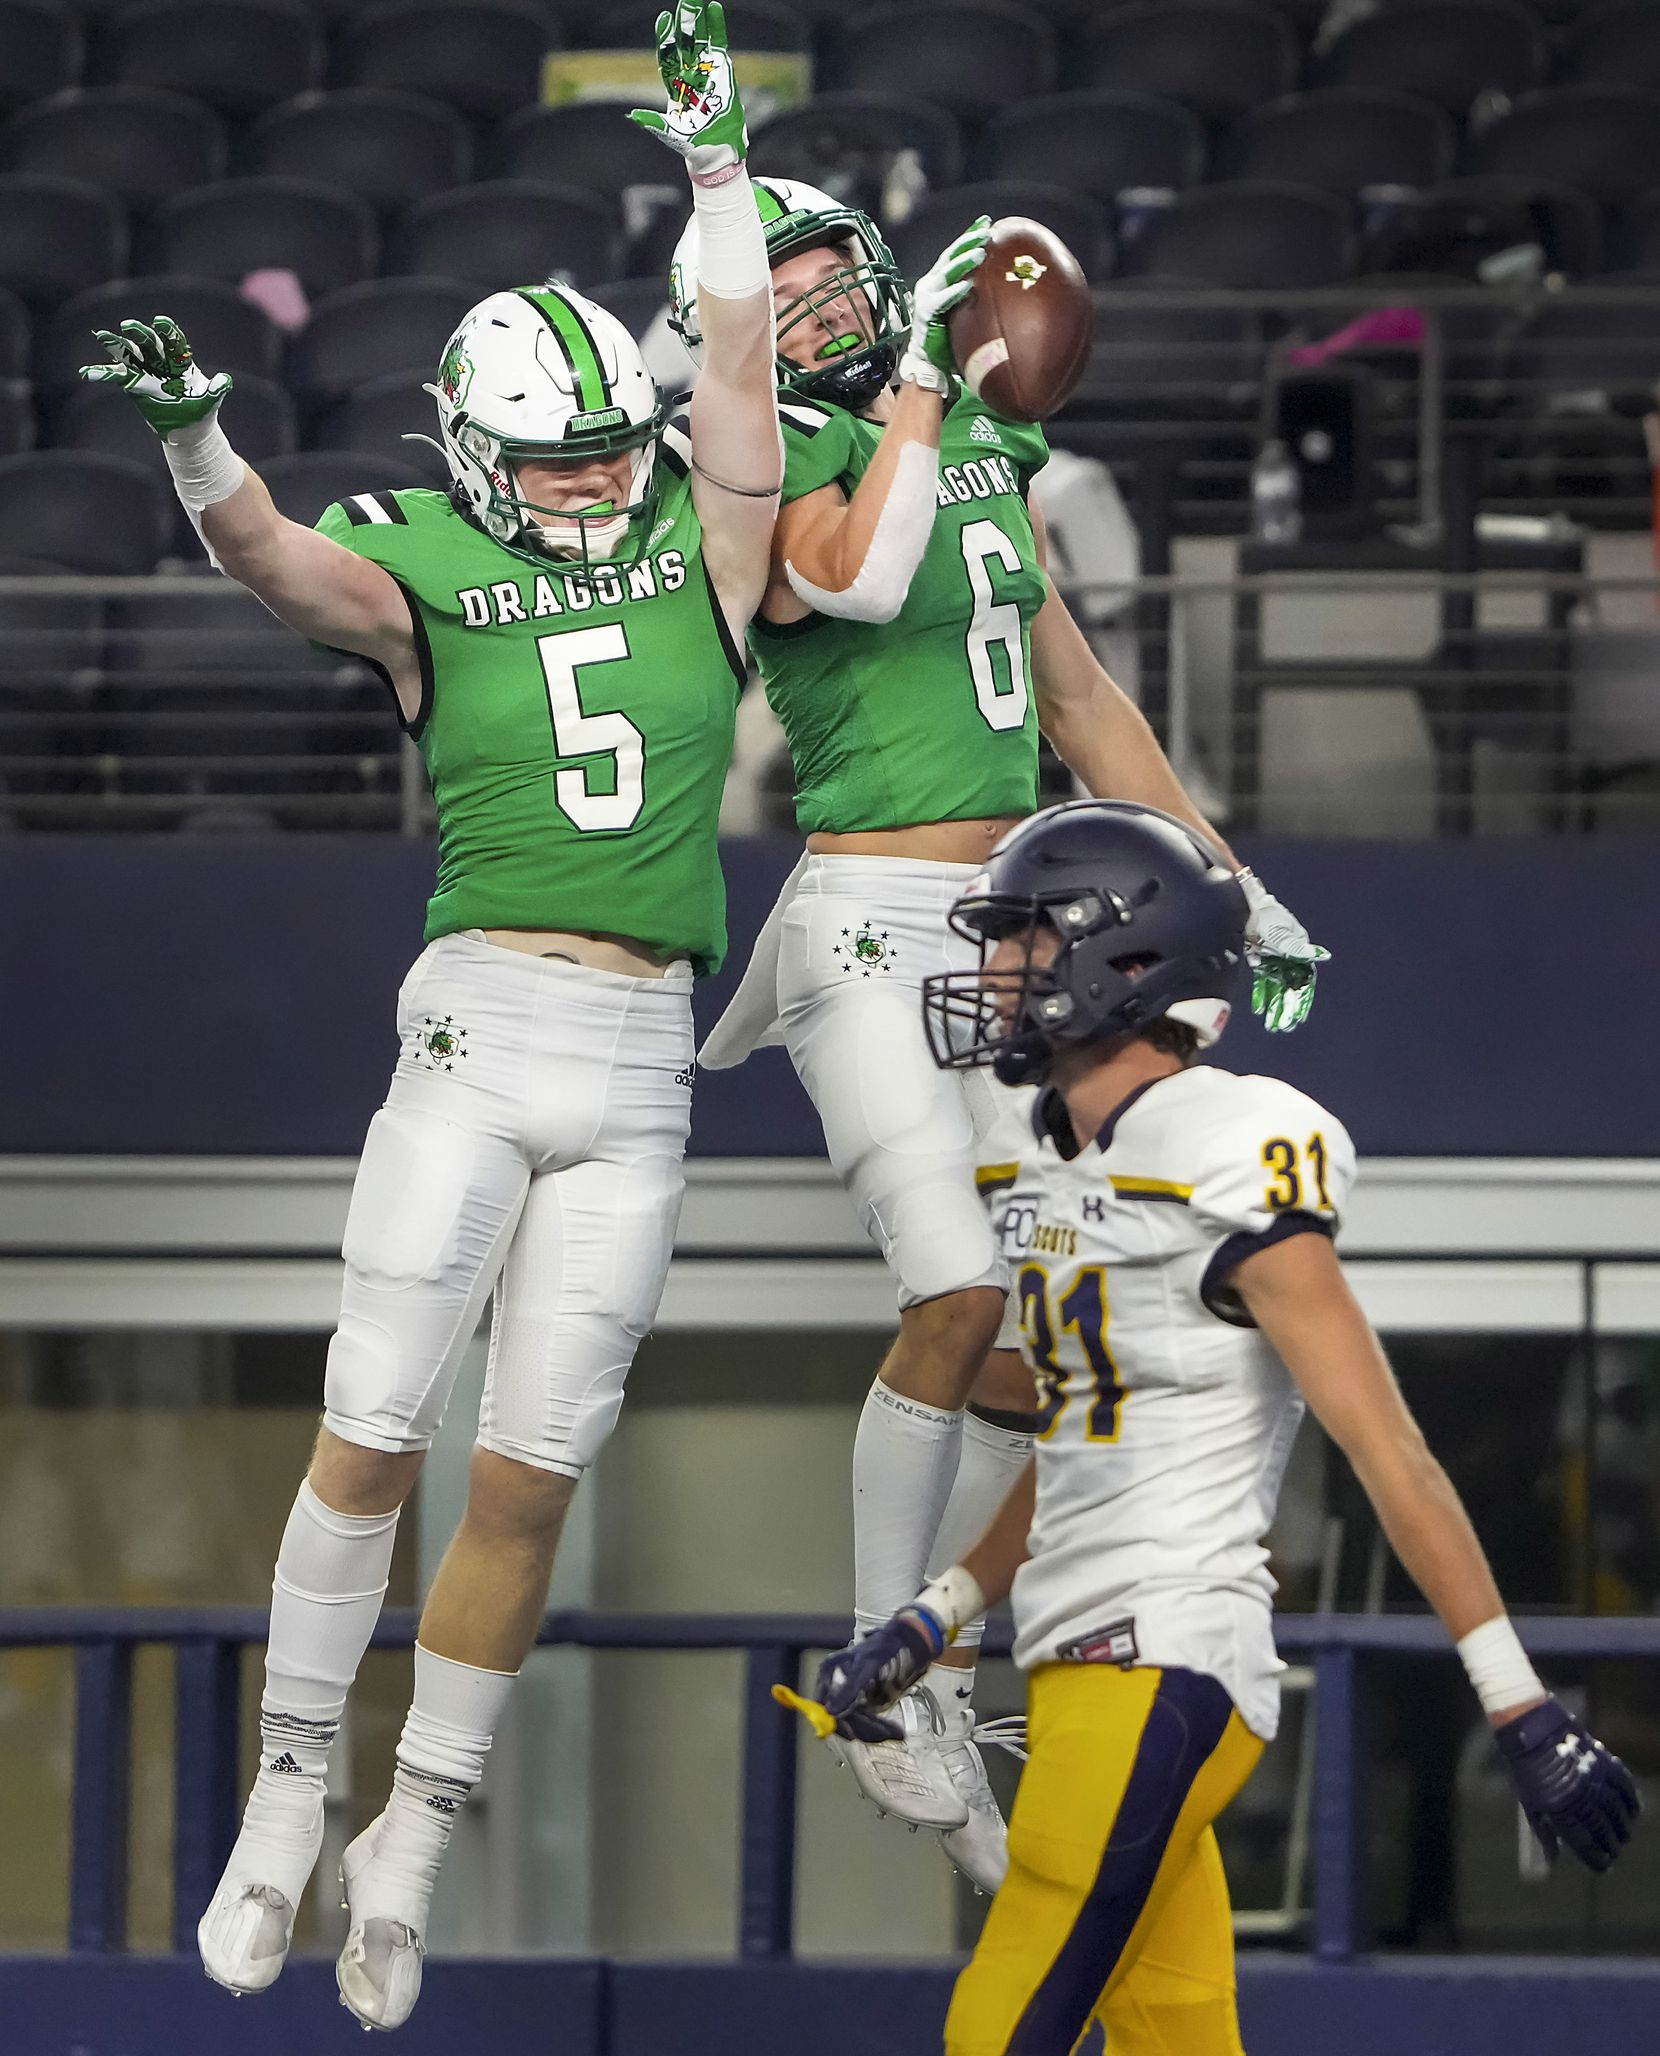 Southlake Carroll wide receiver Landon Samson (6) celebrates with Corbin Duwe (5) after scoring on a touchdown reception past Highland Park defensive back Blake Bevans (31) during the first half of a high school football game at AT&T Stadium on Thursday, Aug. 26, 2021, in Arlington.